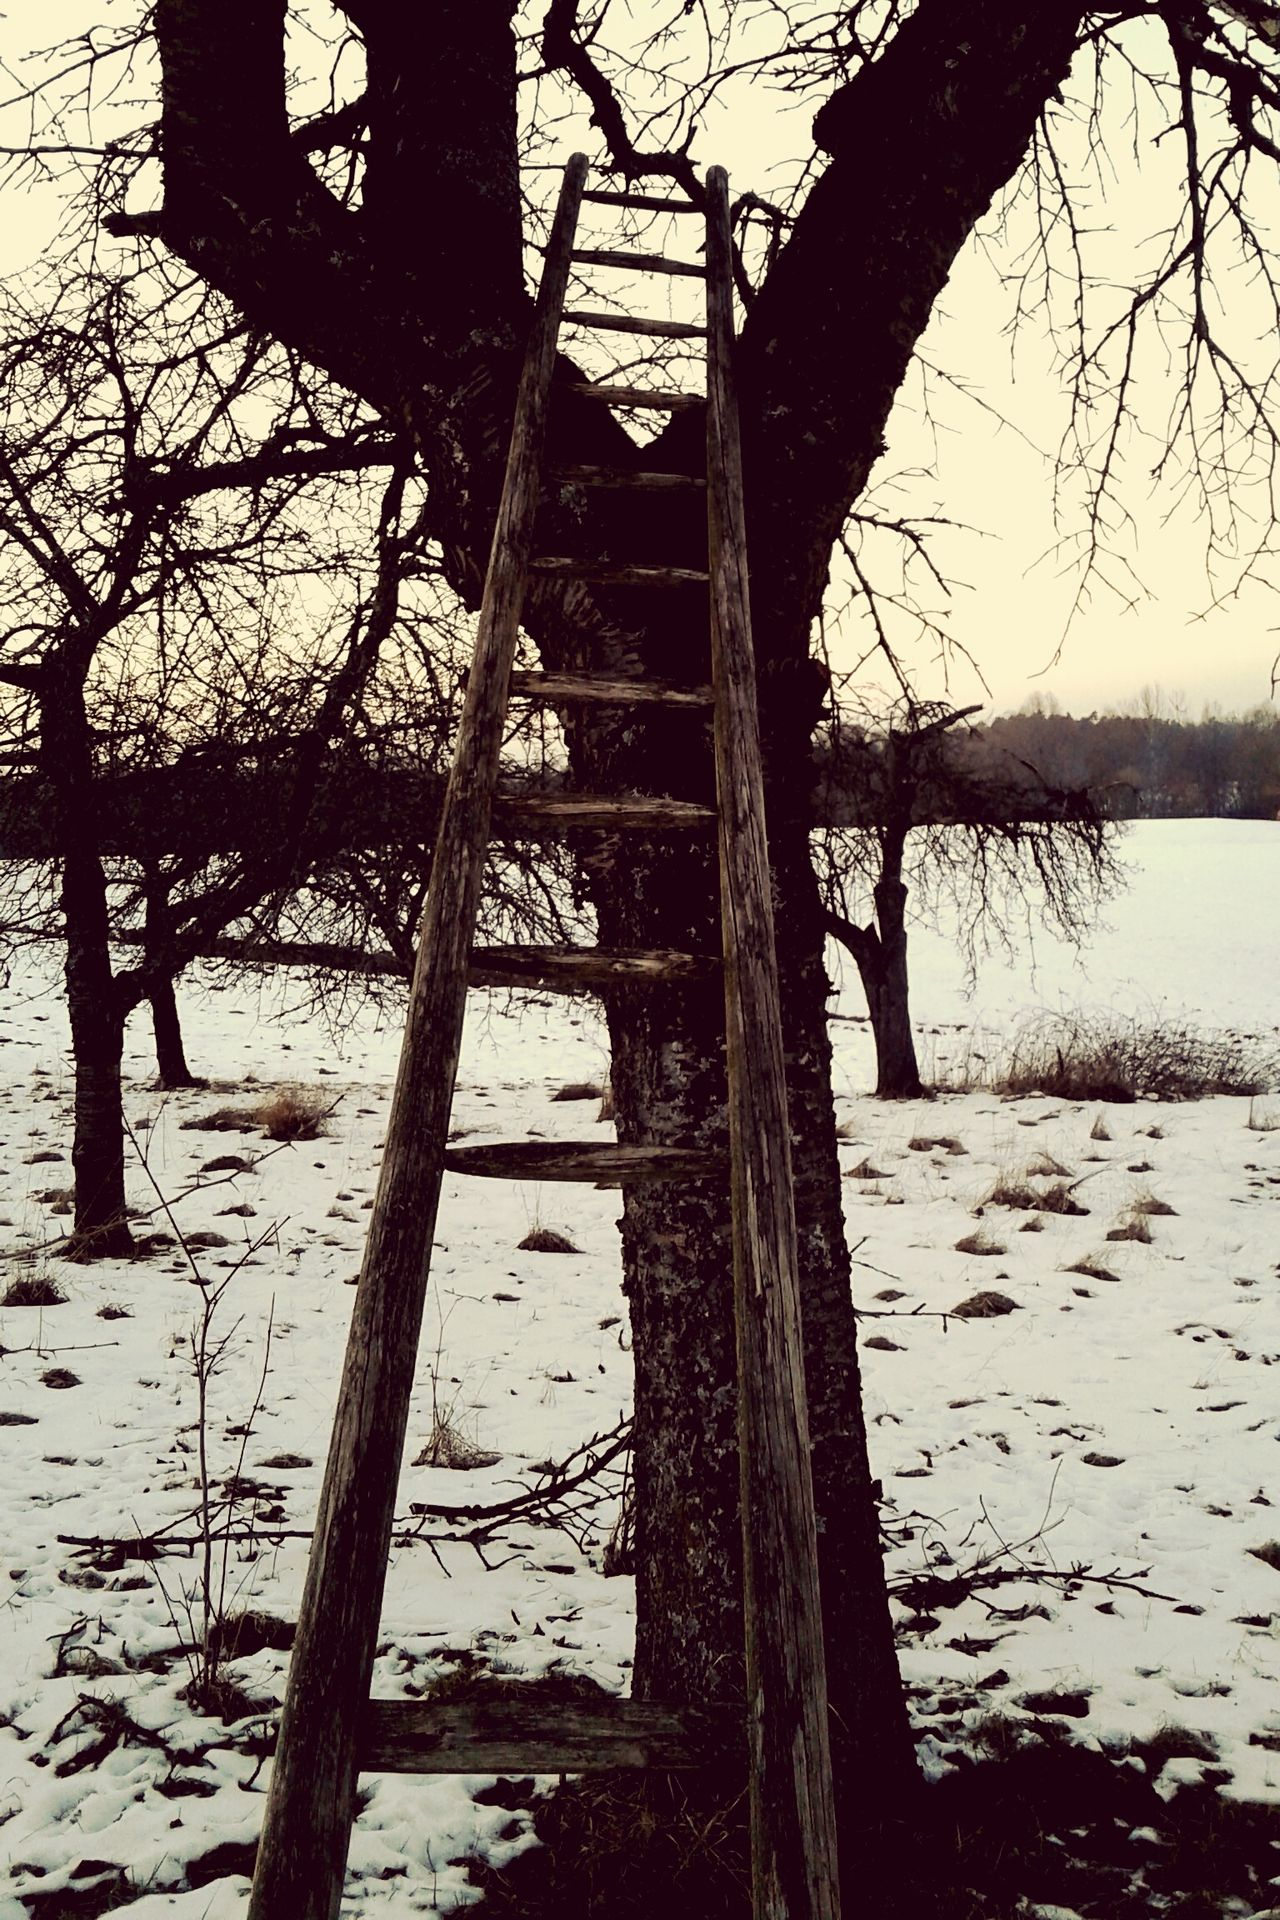 Nature Tree Outdoors Day Beauty In Nature Cloud - Sky Tranquility Tranquil Scene Winter Day Wintertime Sky Melancolia No People Ladder wooden ladder broken ladder Garden Photography Wood - Material